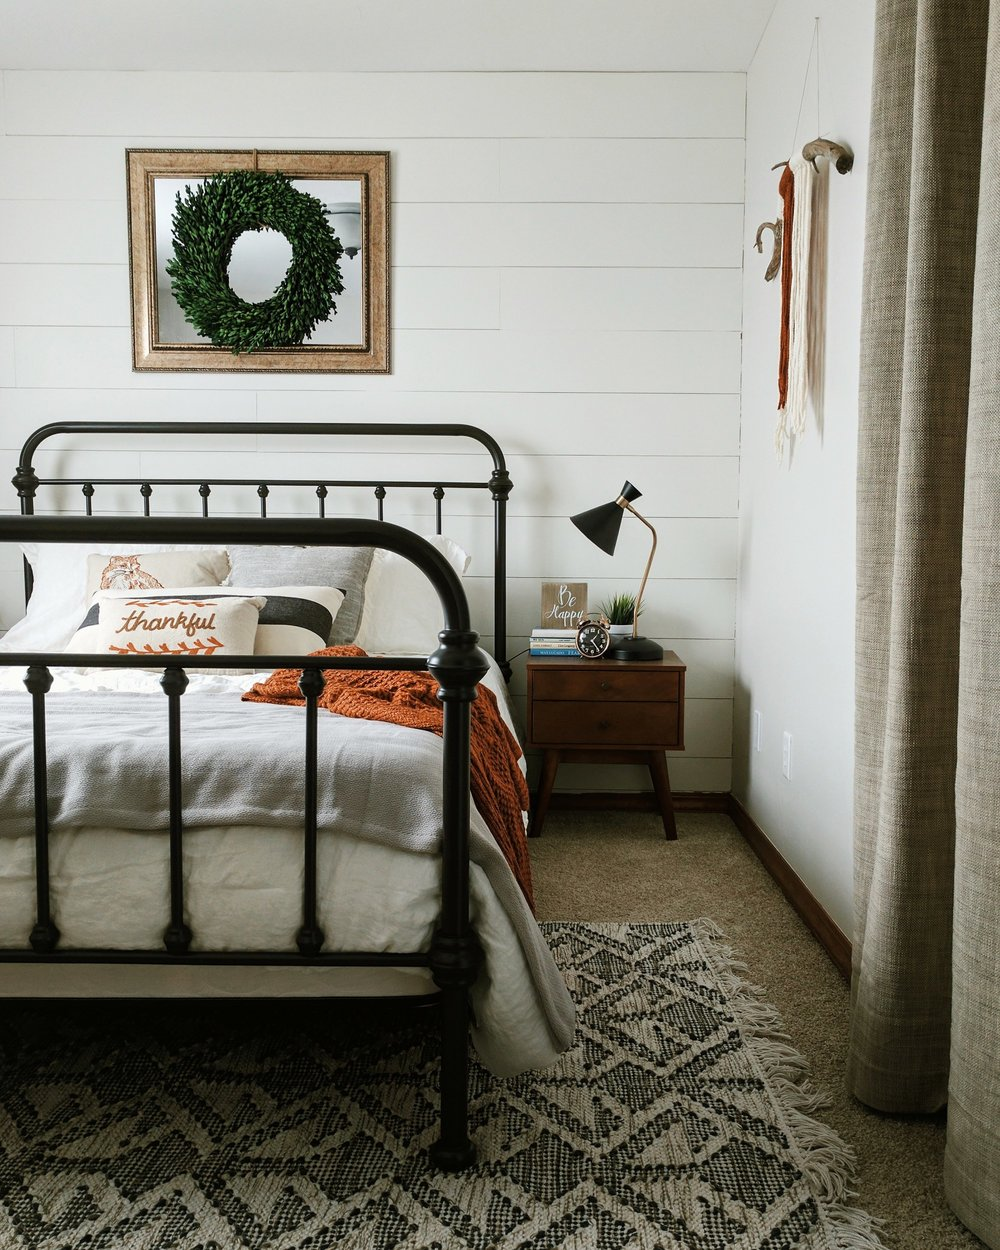 Modern farmhouse bedroom with shiplap wall // shiplap wall in bedroom